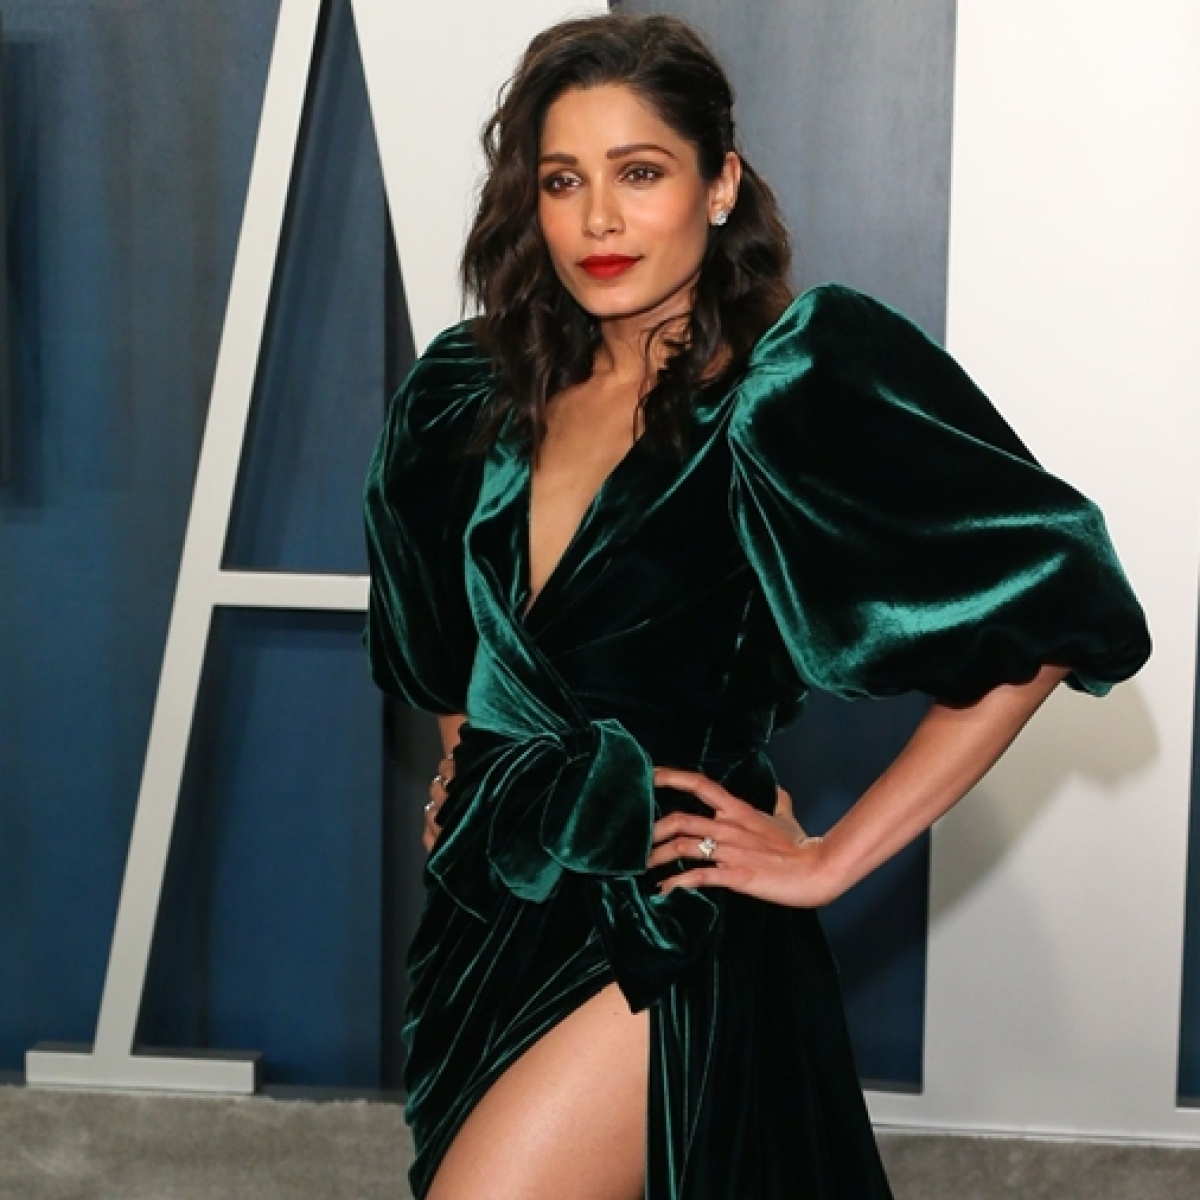 FPJ Fashion Police: We bet you missed Freida Pinto sashaying in her Rs 2.5 lakh dress at the Vanity Fair Oscars after-party